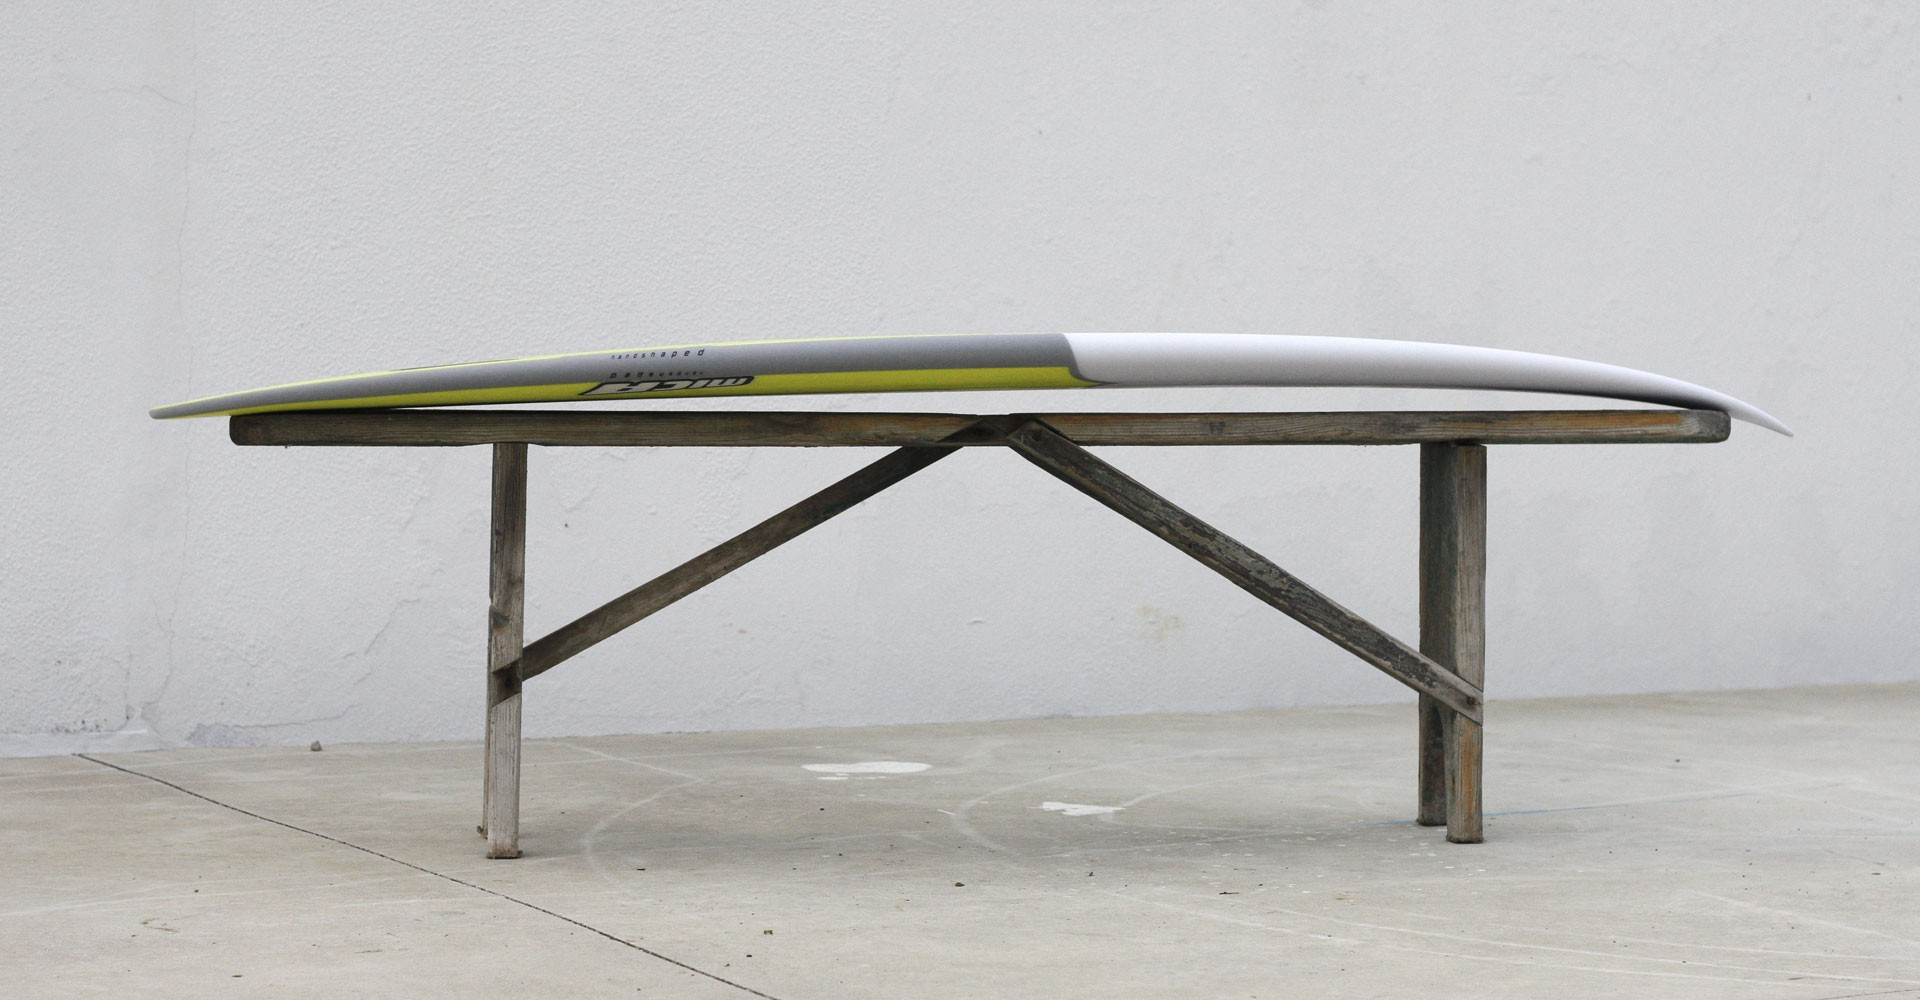 Surfboard order? Now online at Micasurfboards or at The Surfboard Shop in Ericeira Surfing Reserve.